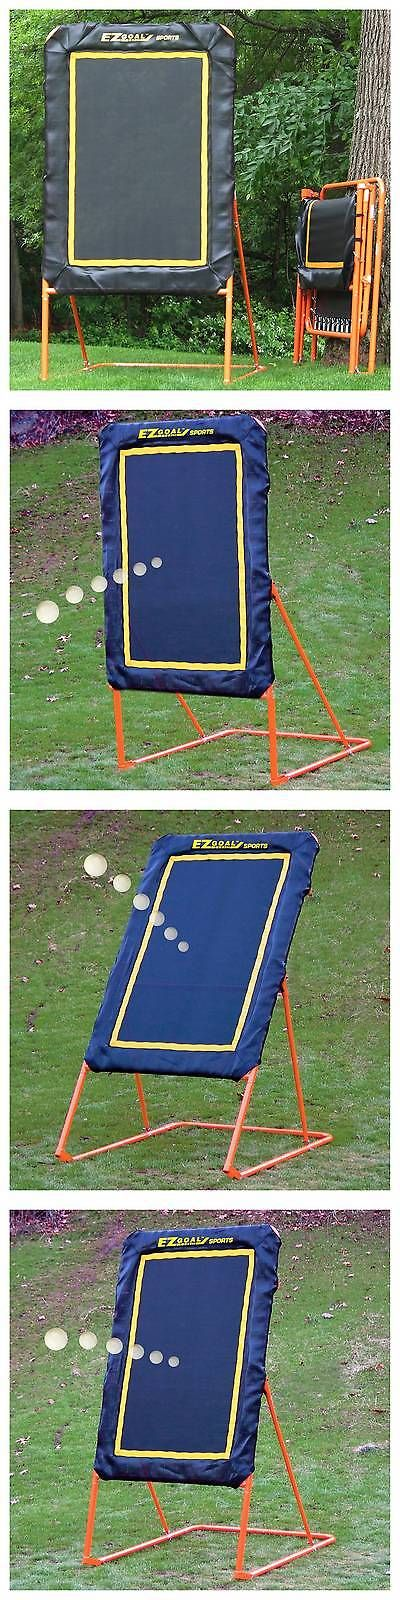 Other Helmets and Protection 177866: Ez Goal Rocket Back Lacrosse Rebounder -> BUY IT NOW ONLY: $173.99 on eBay!